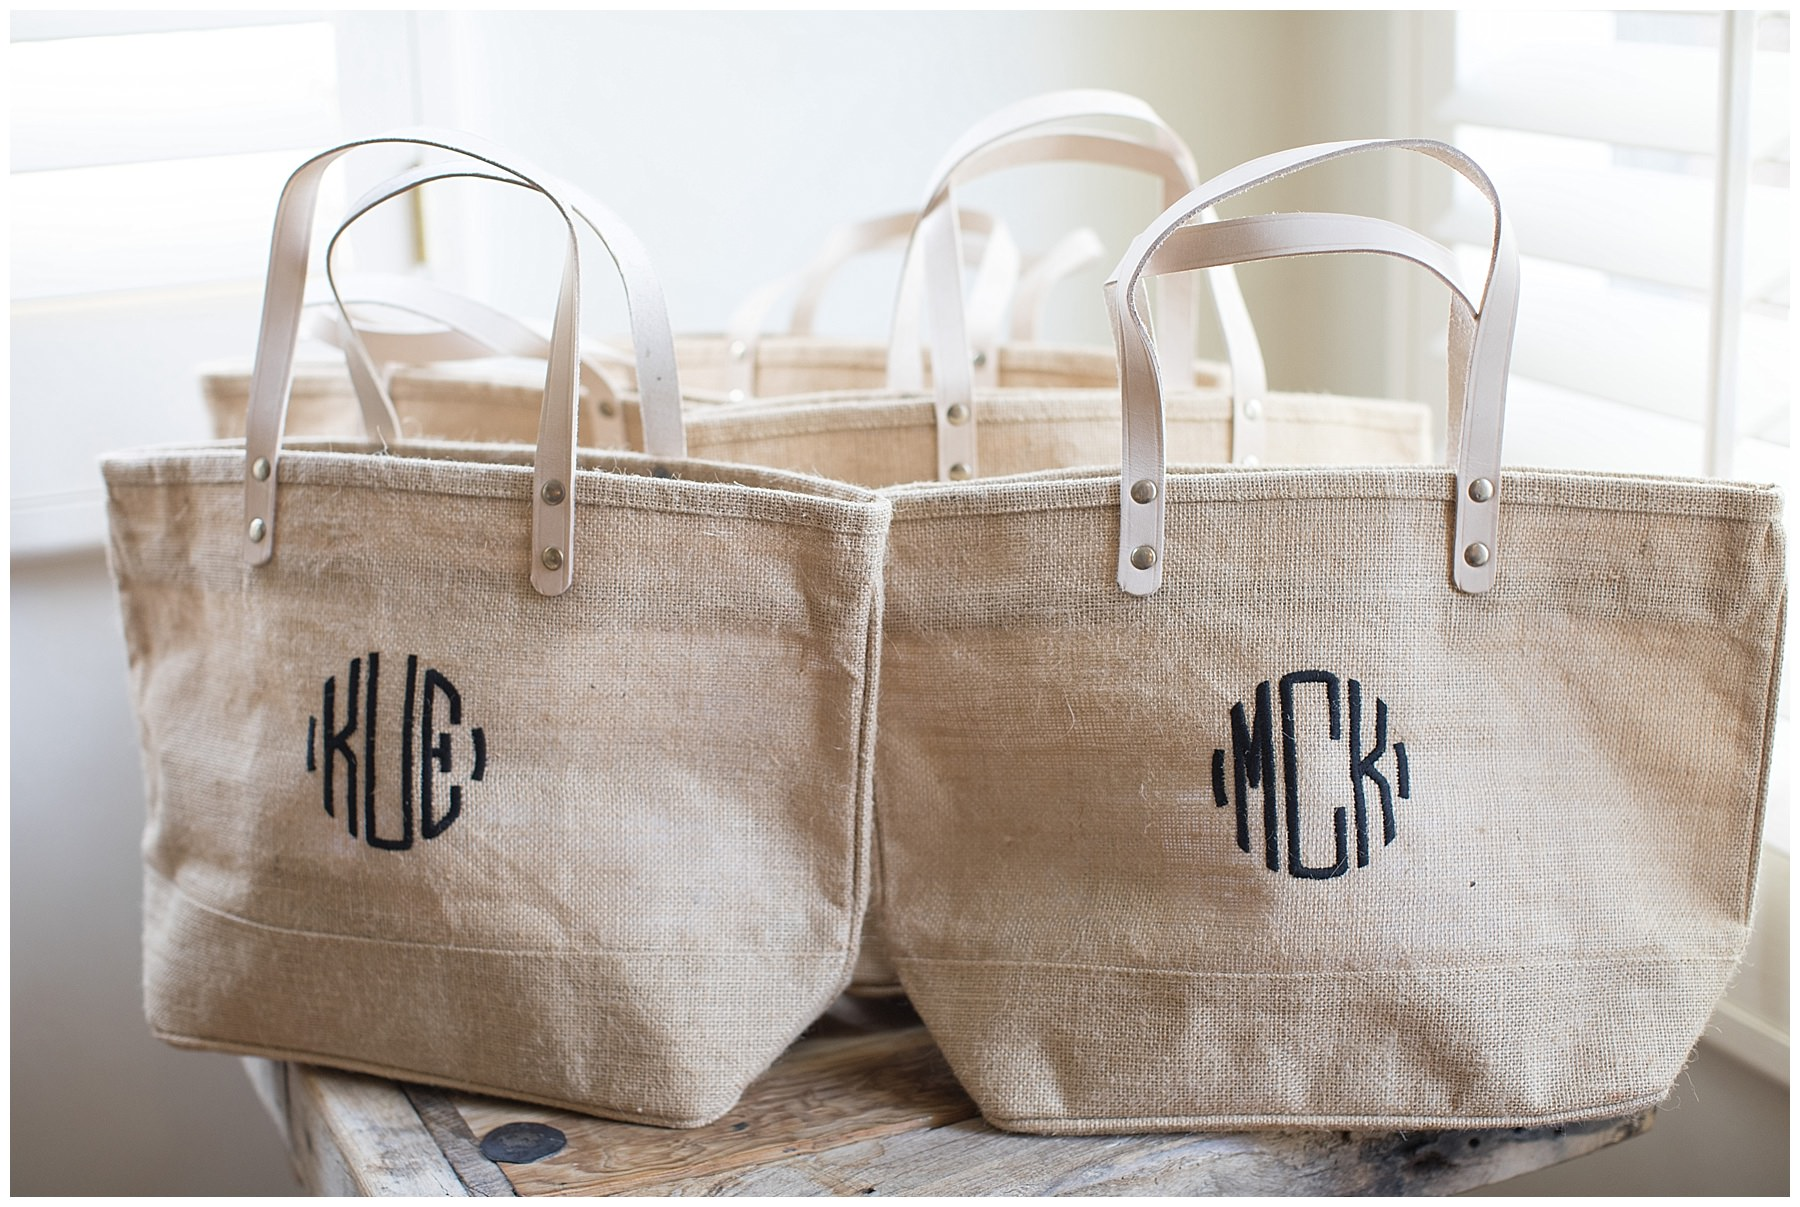 monogrammed burlap bags for bridesmaids gifts